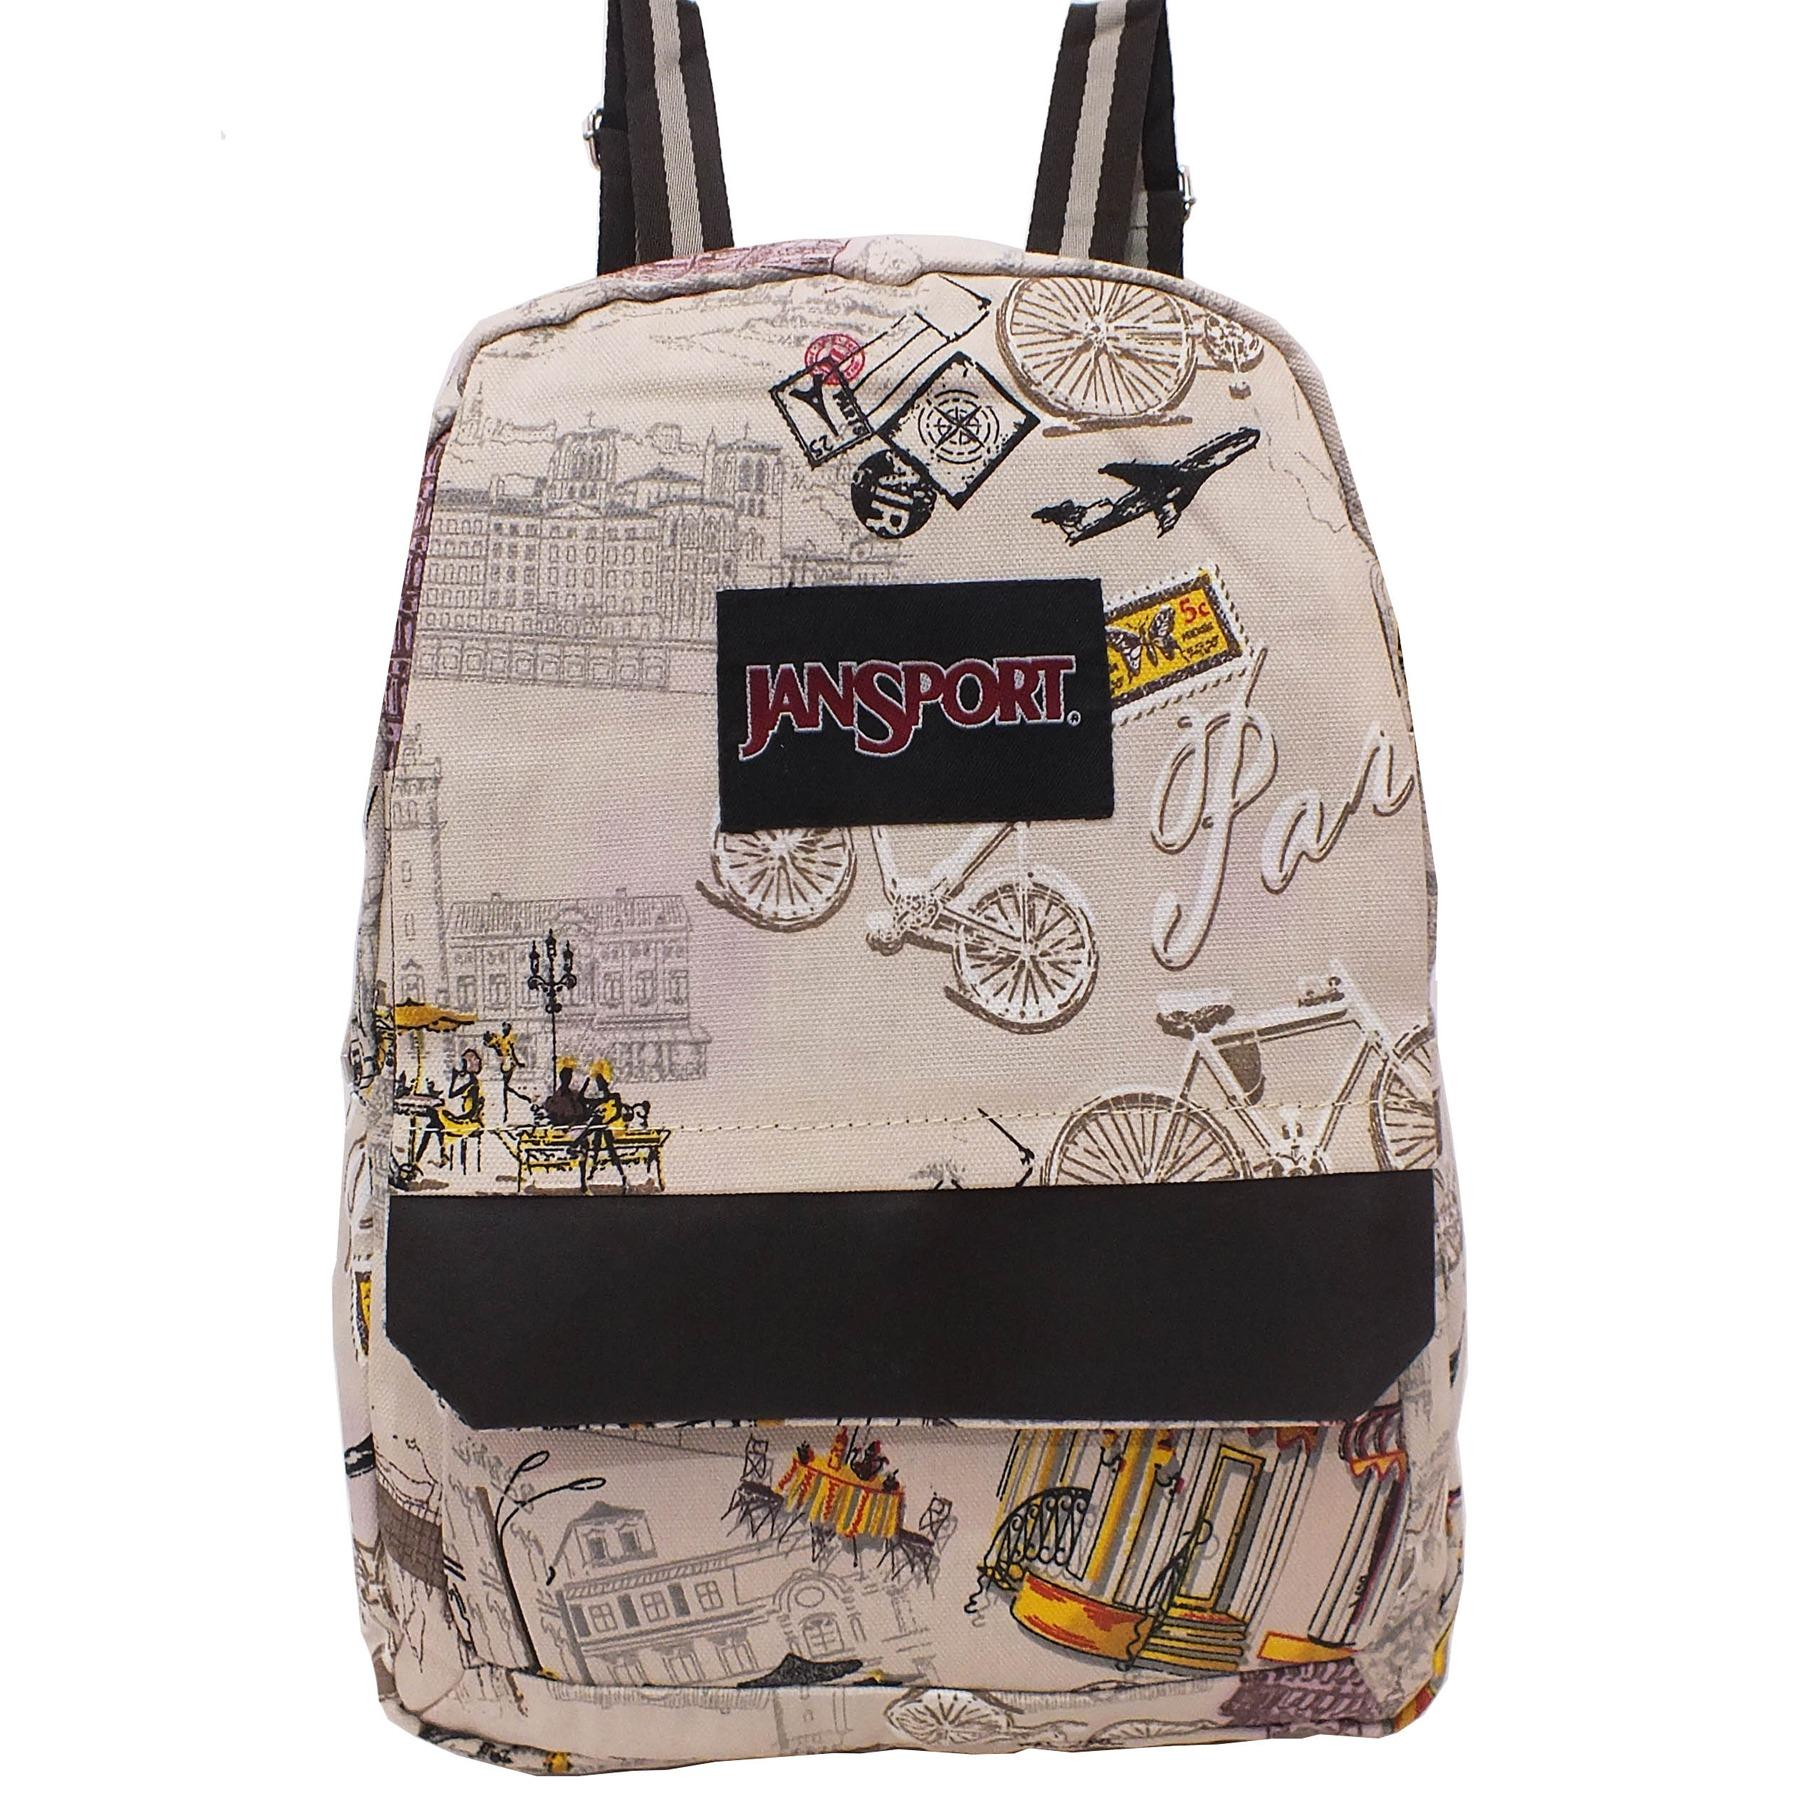 Tas ransel jansport paris 7992